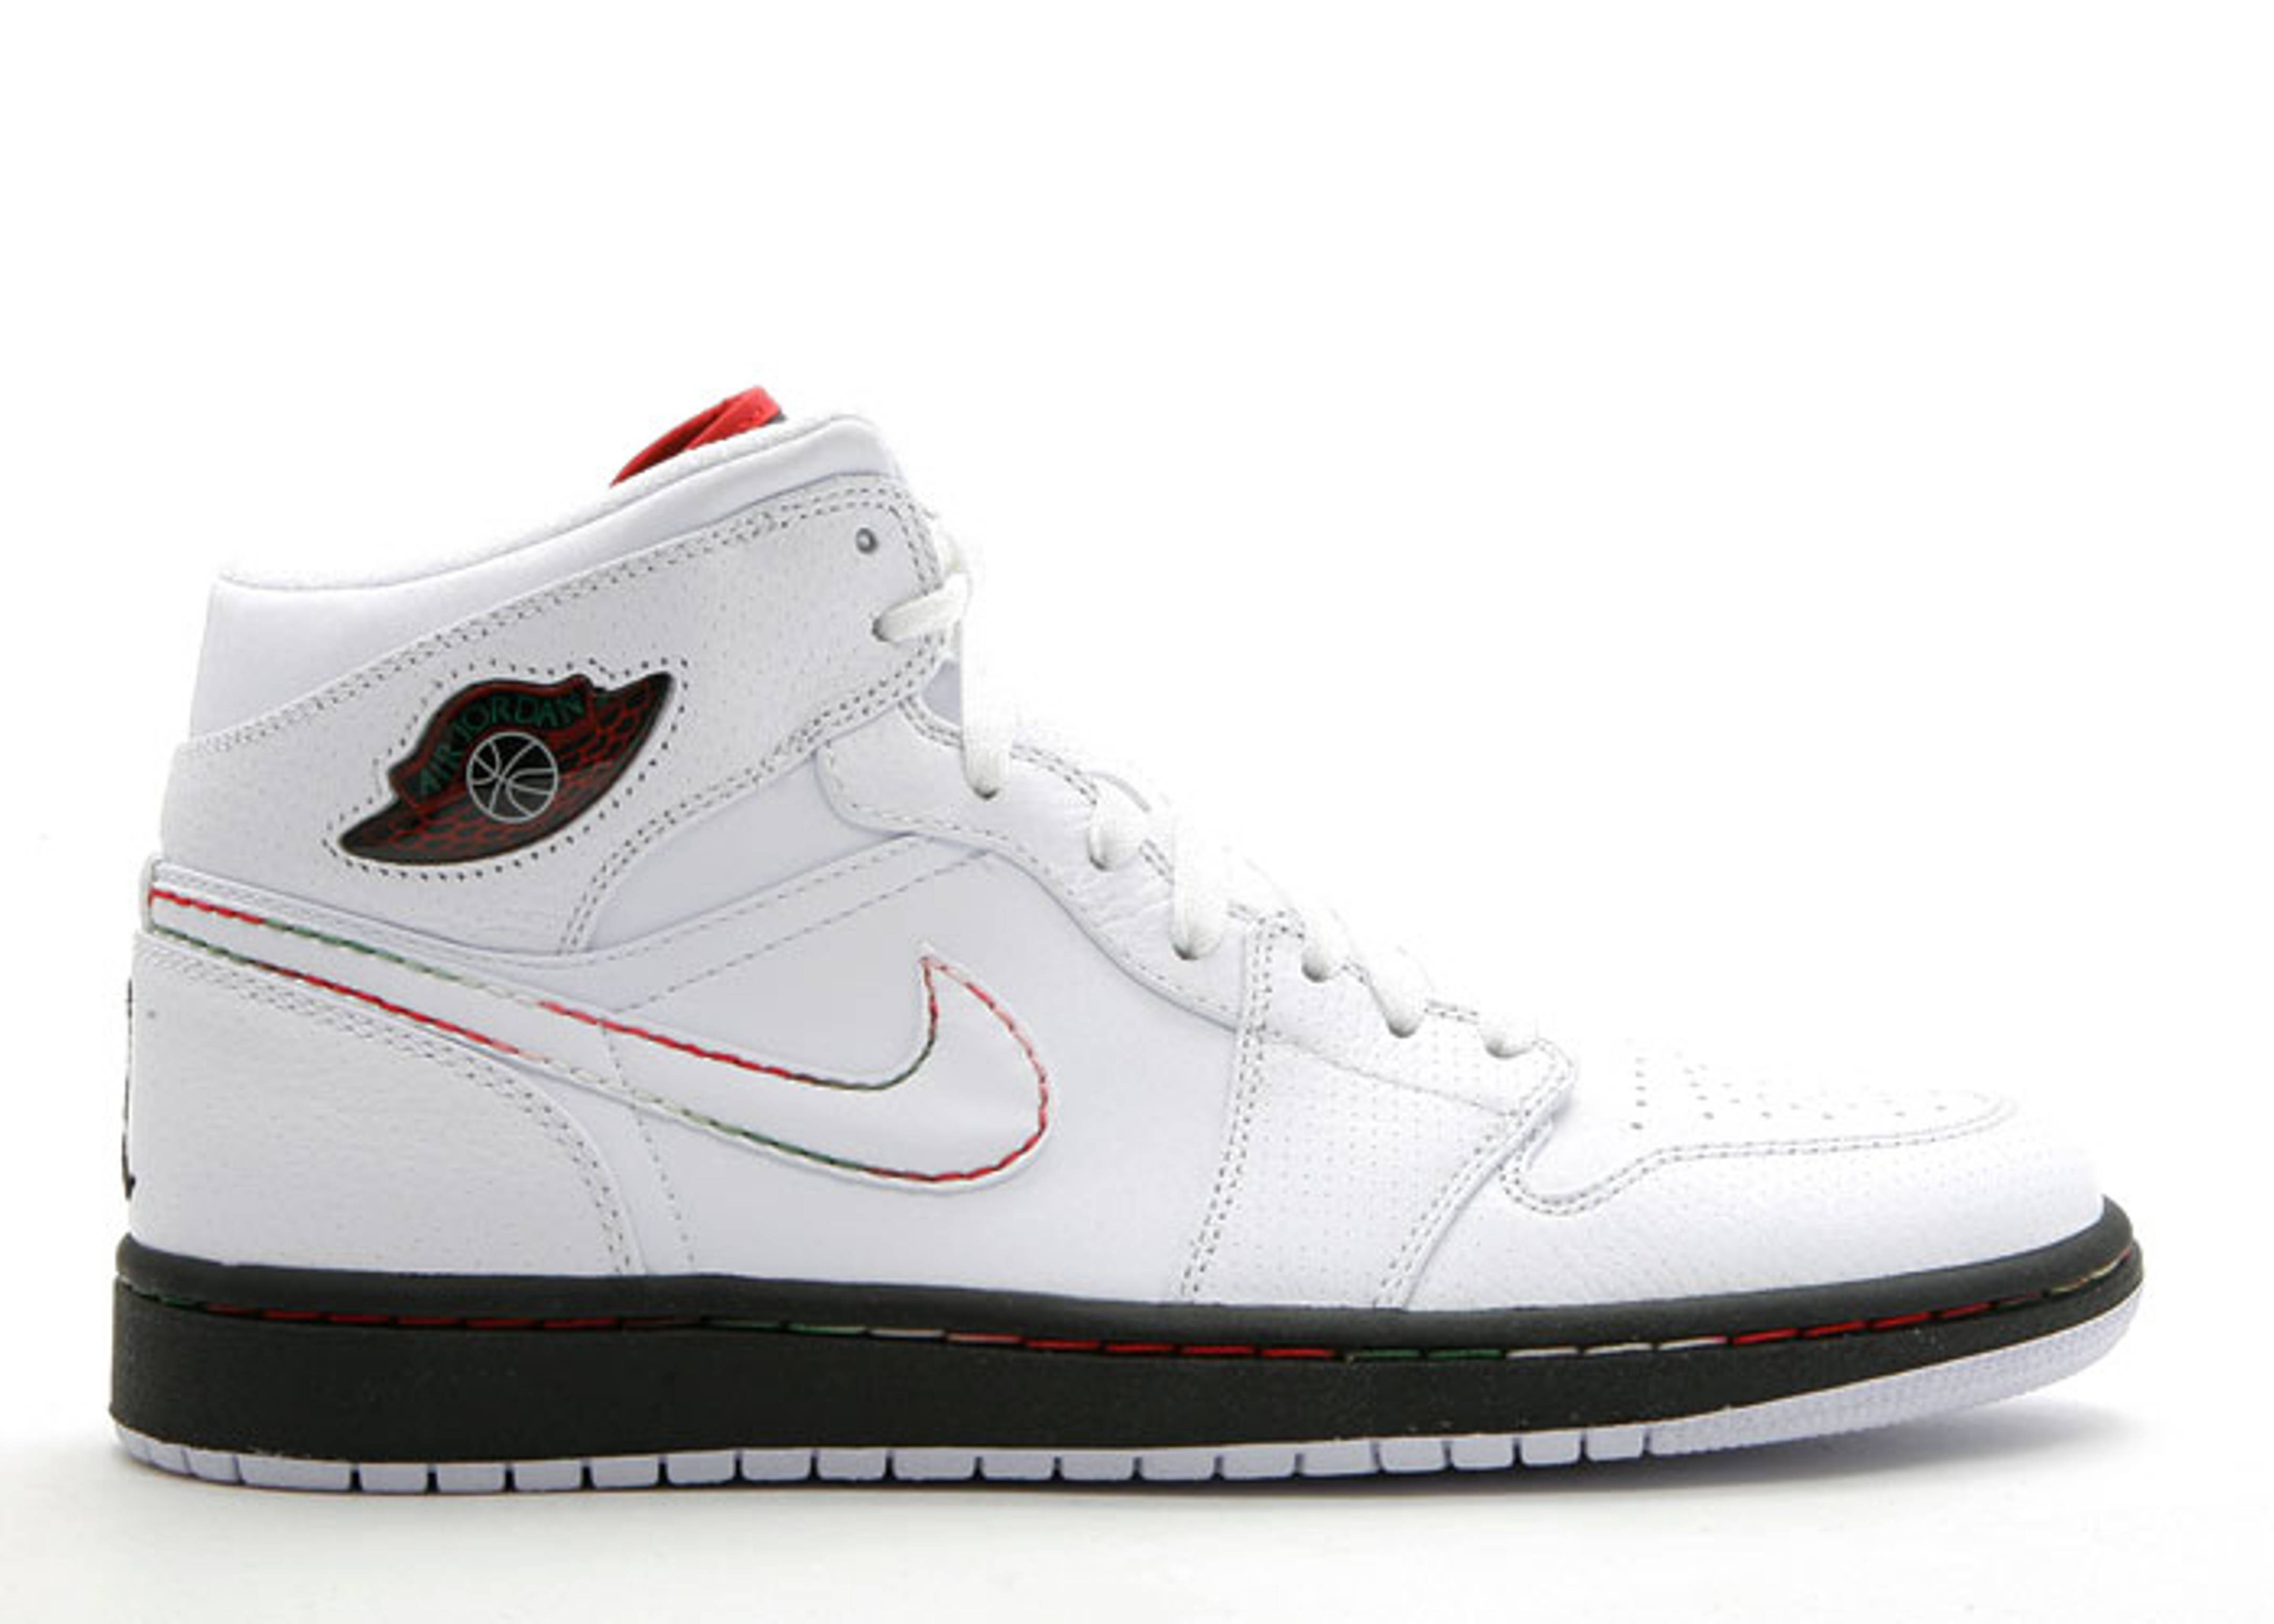 air jordan 1 release locations of mayo